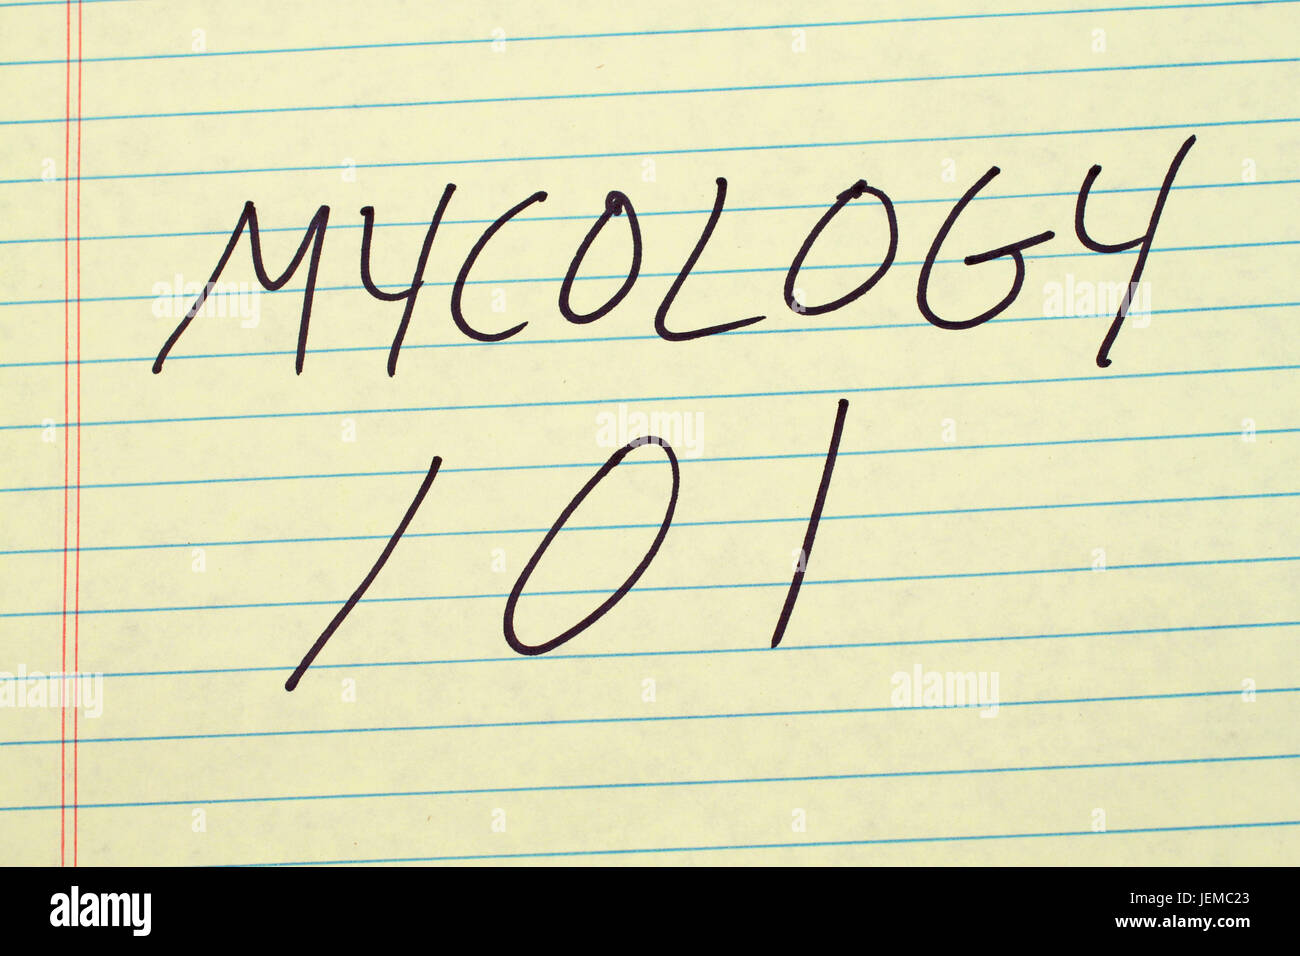 The words 'Mycology 101' on a yellow legal pad - Stock Image